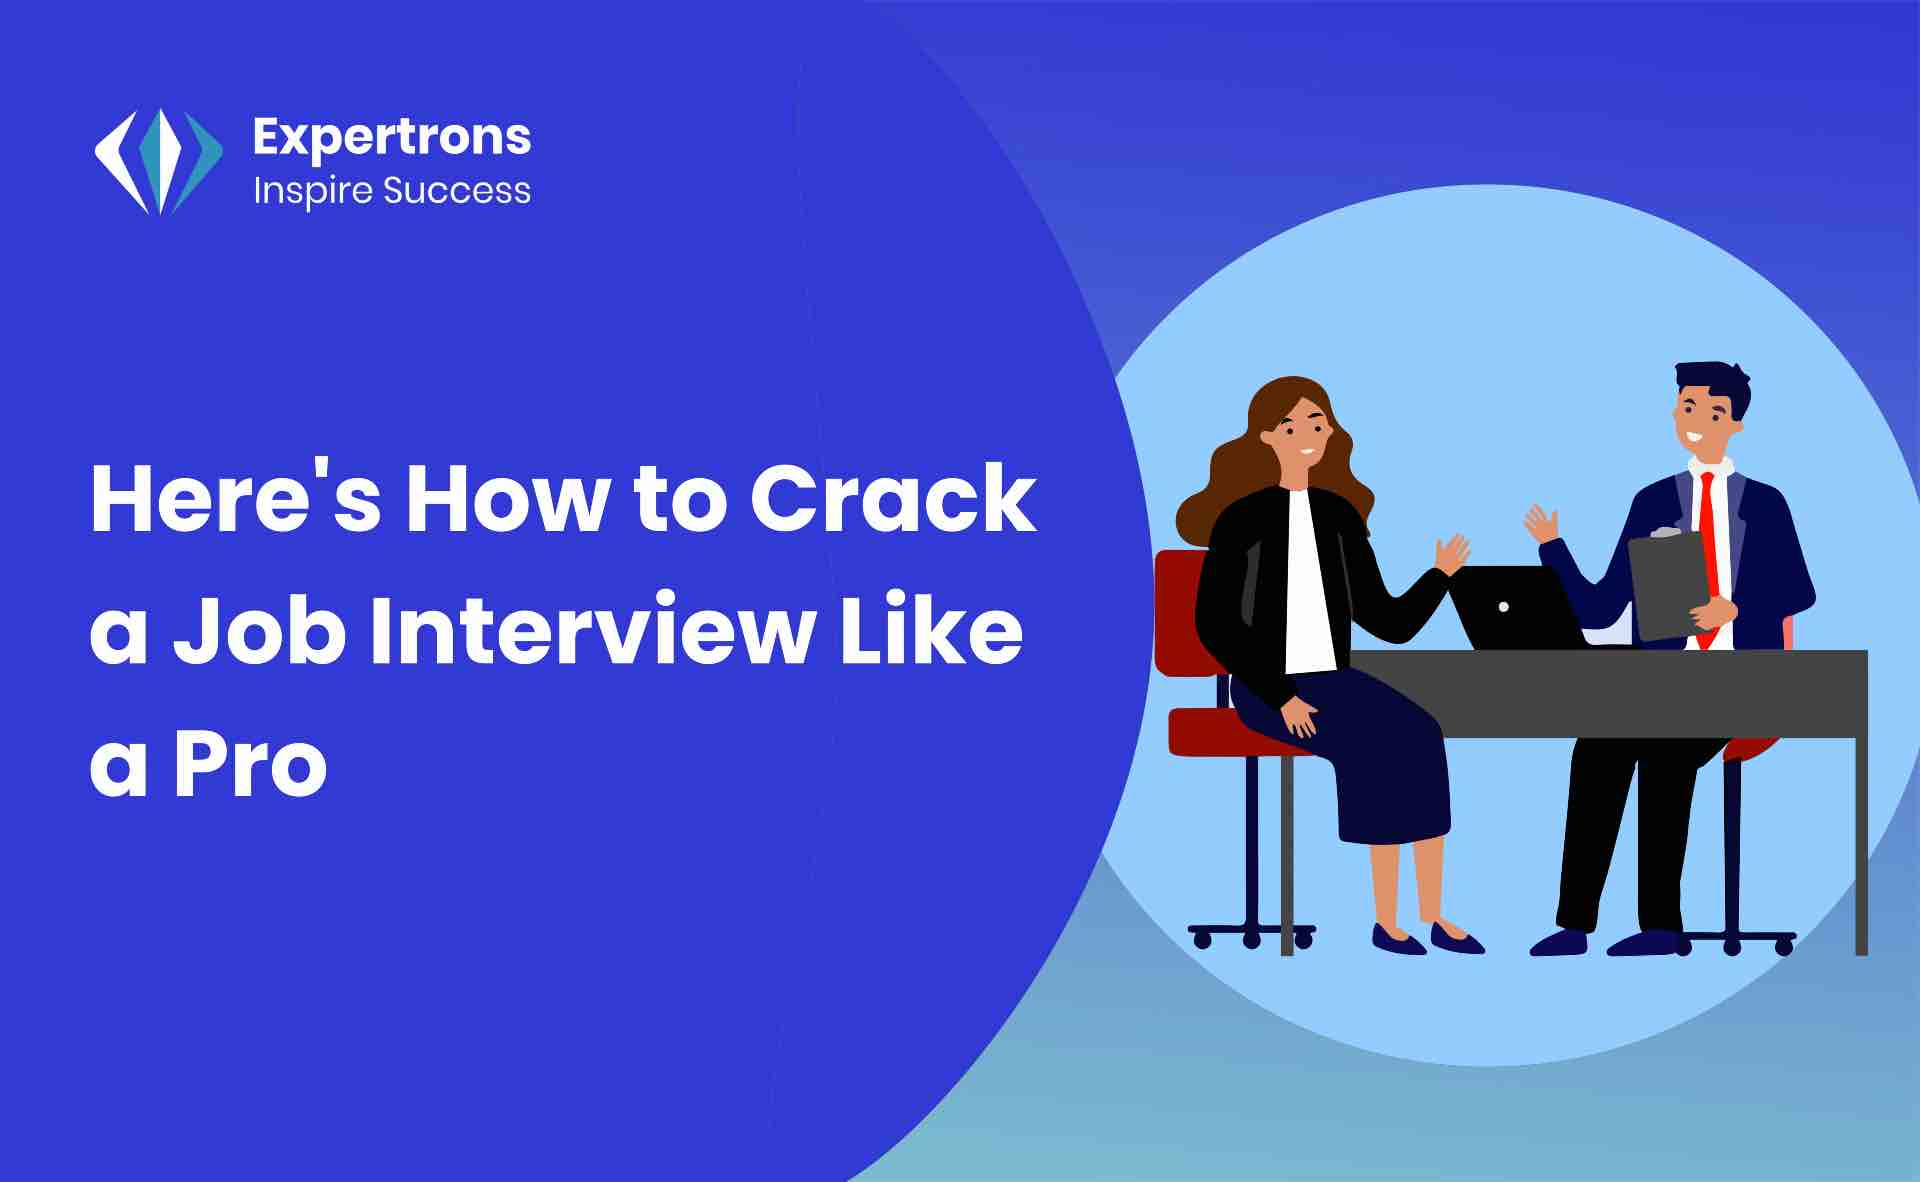 career counseling online, job interview, interview, career guidance, interview preparation, virtual interview, mock interview, common interview questions, interview tips